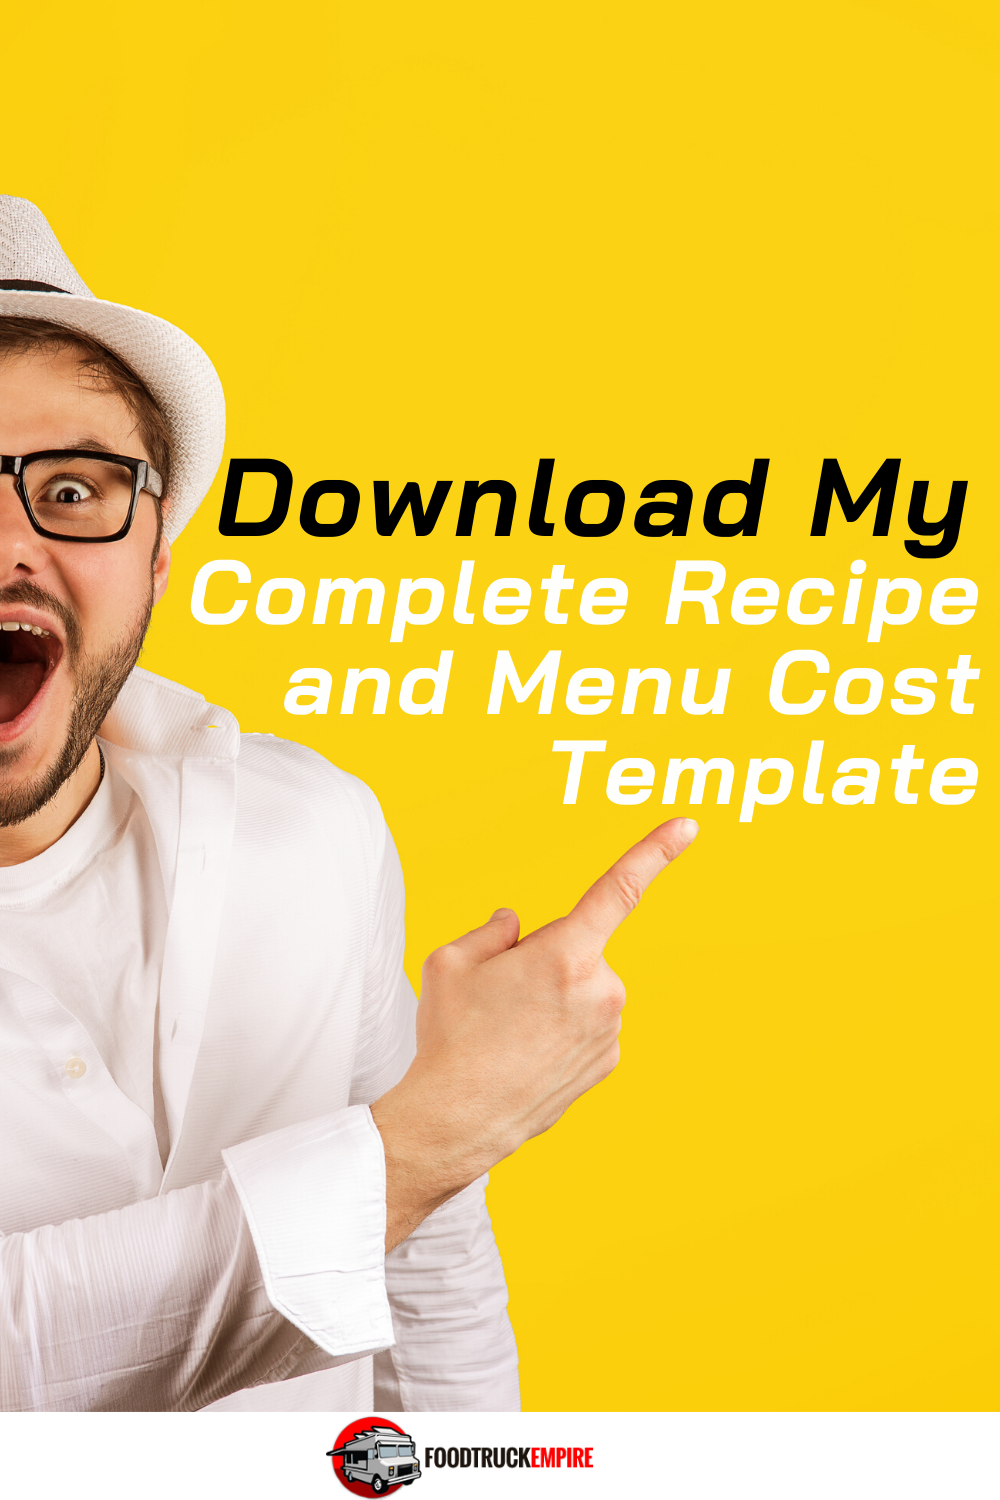 Menu & Recipe Cost Template: Download Free Spreadsheet